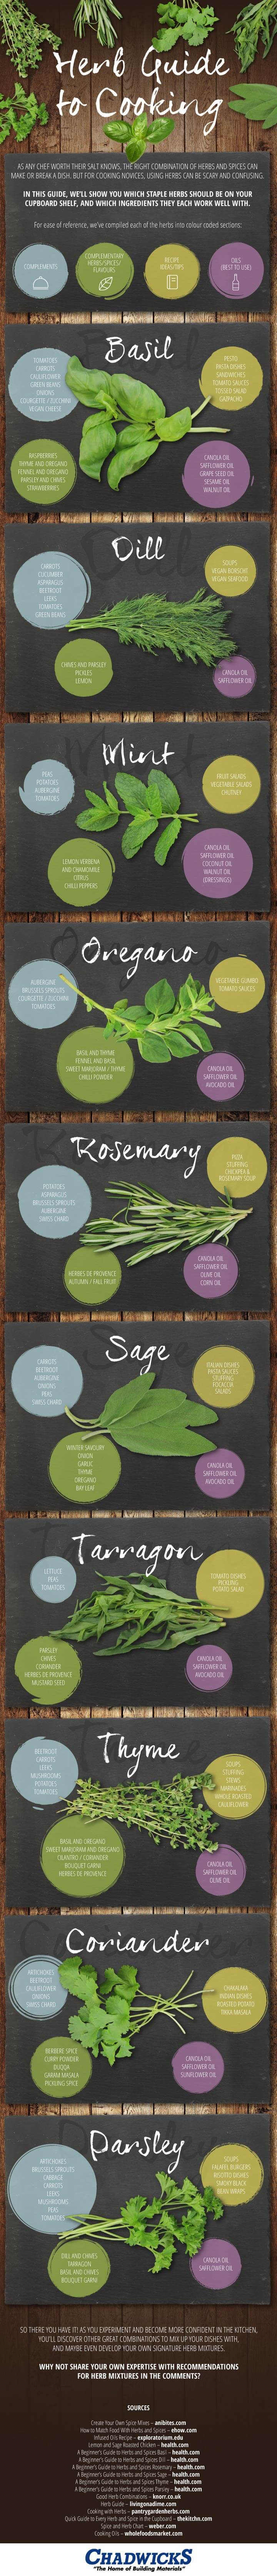 A-Herb-Guide-to-Cooking